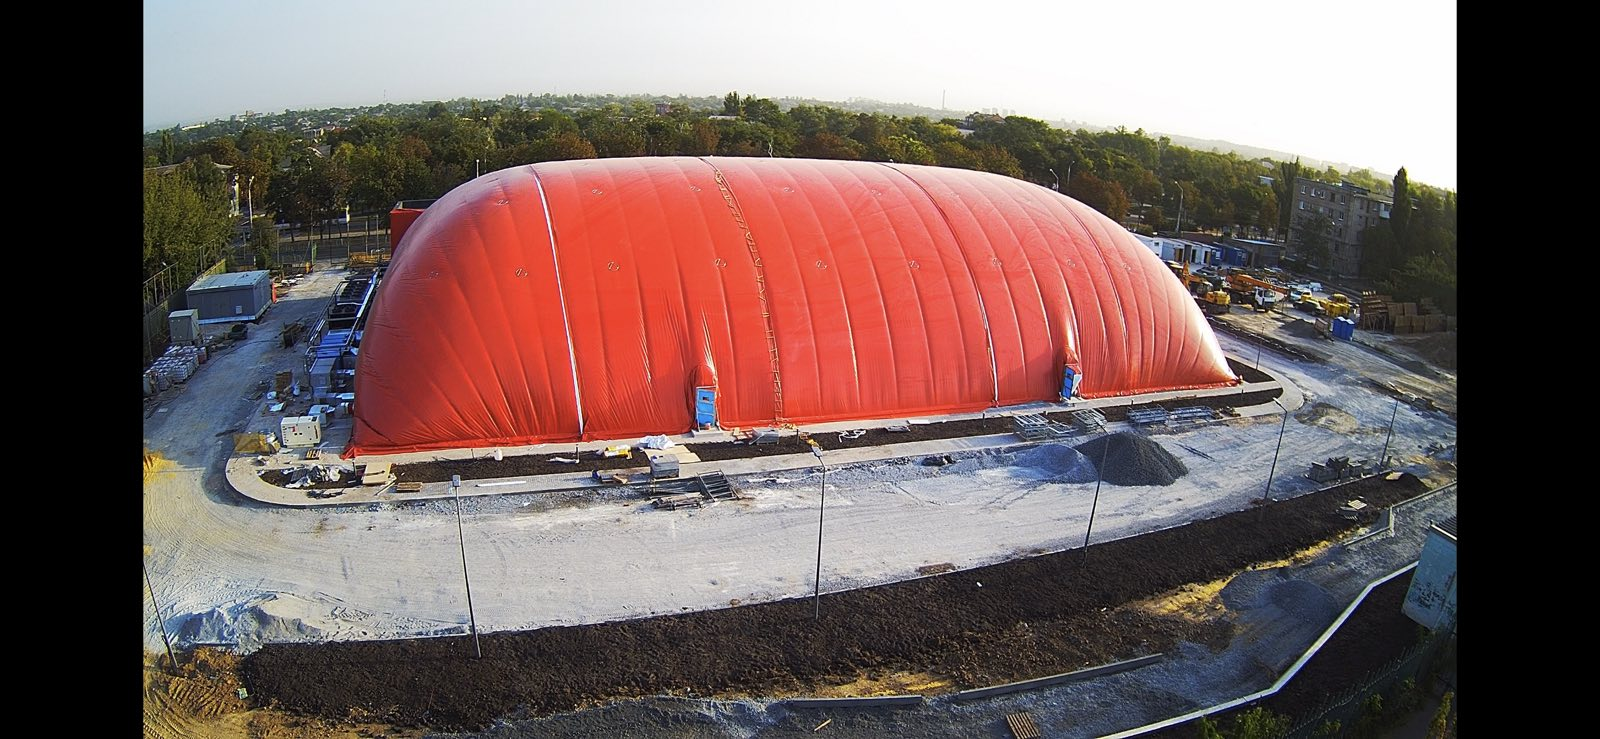 Completed the installation of an air-supported dome structure in Mariupol to cover the ice rink